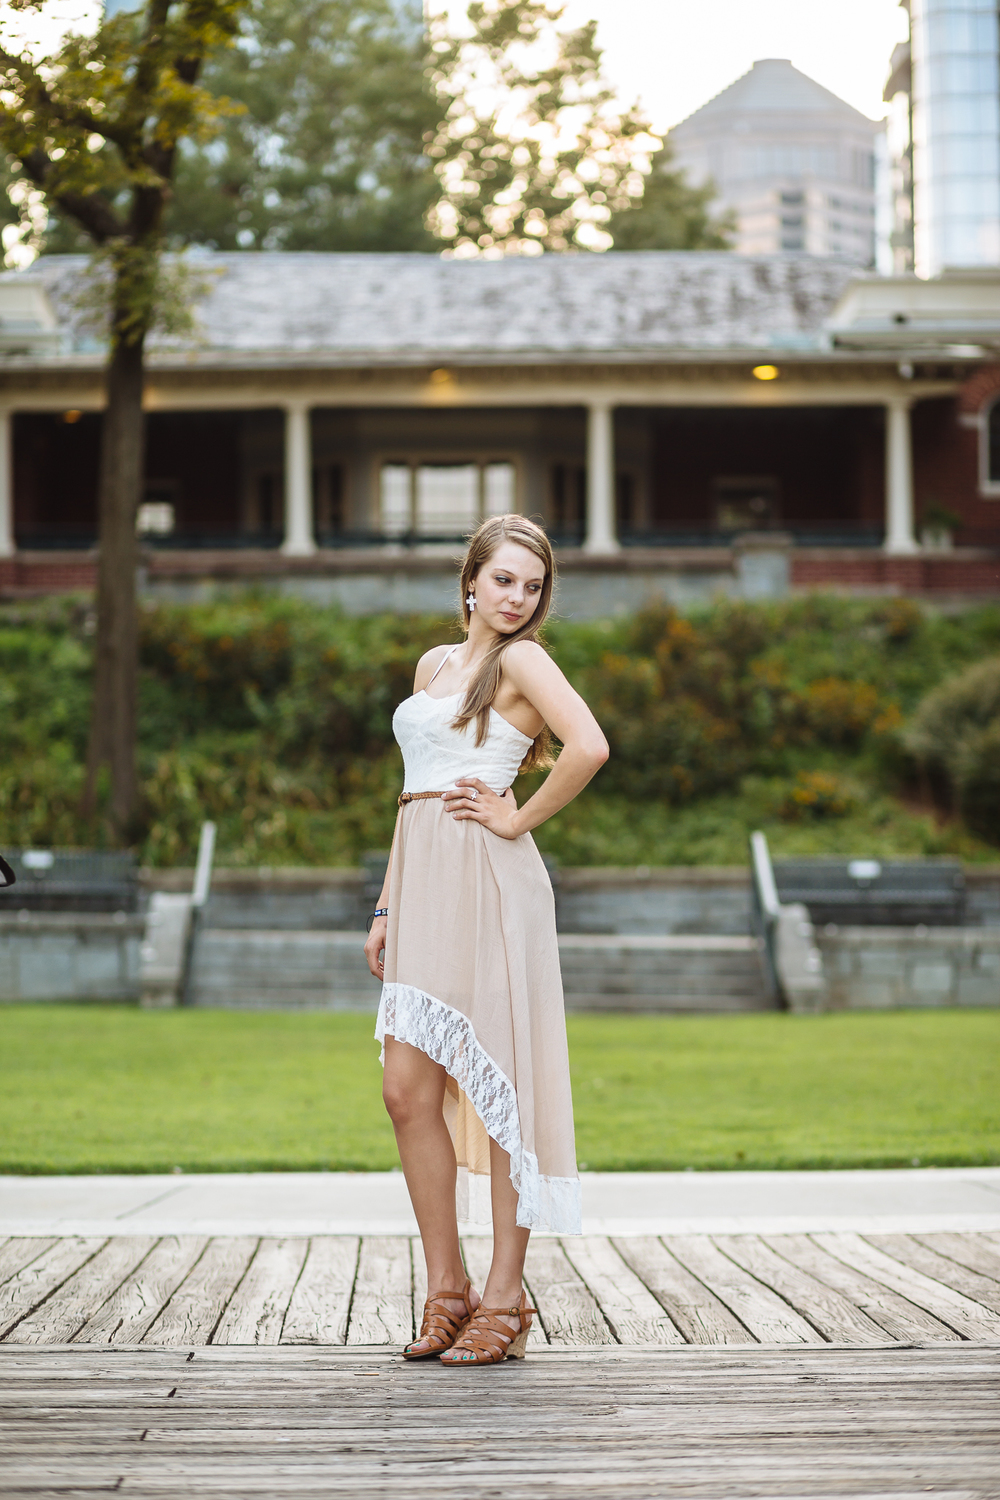 piedmont_park_atlanta_atl_photo_senior_portaits_erin_spruell_phoography_32